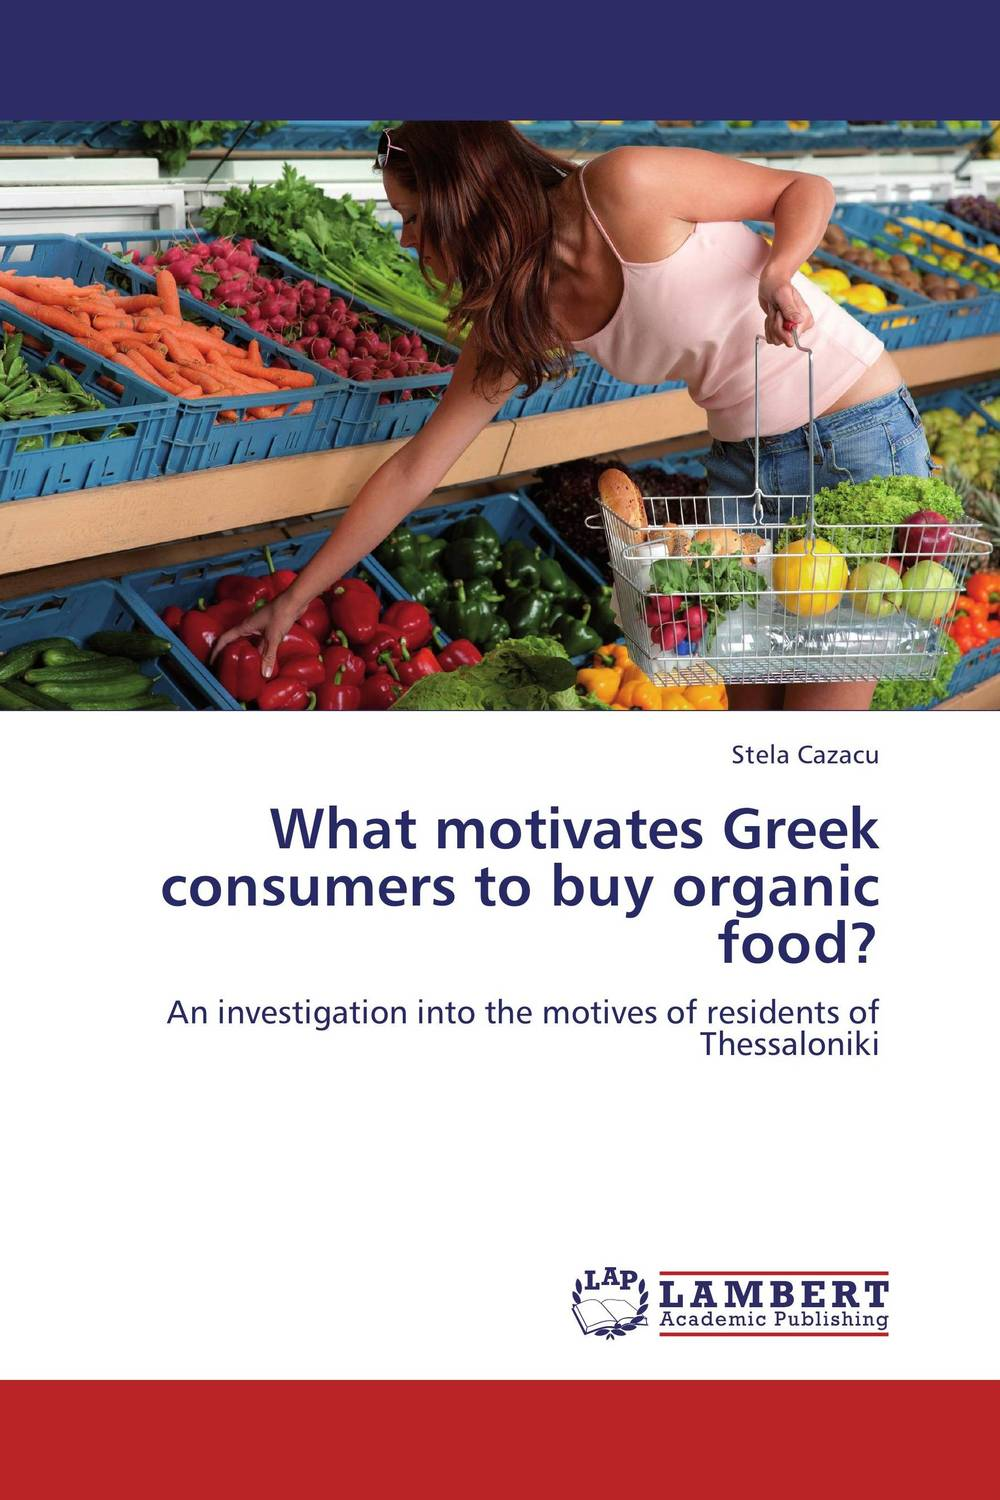 What motivates Greek consumers to buy organic food?